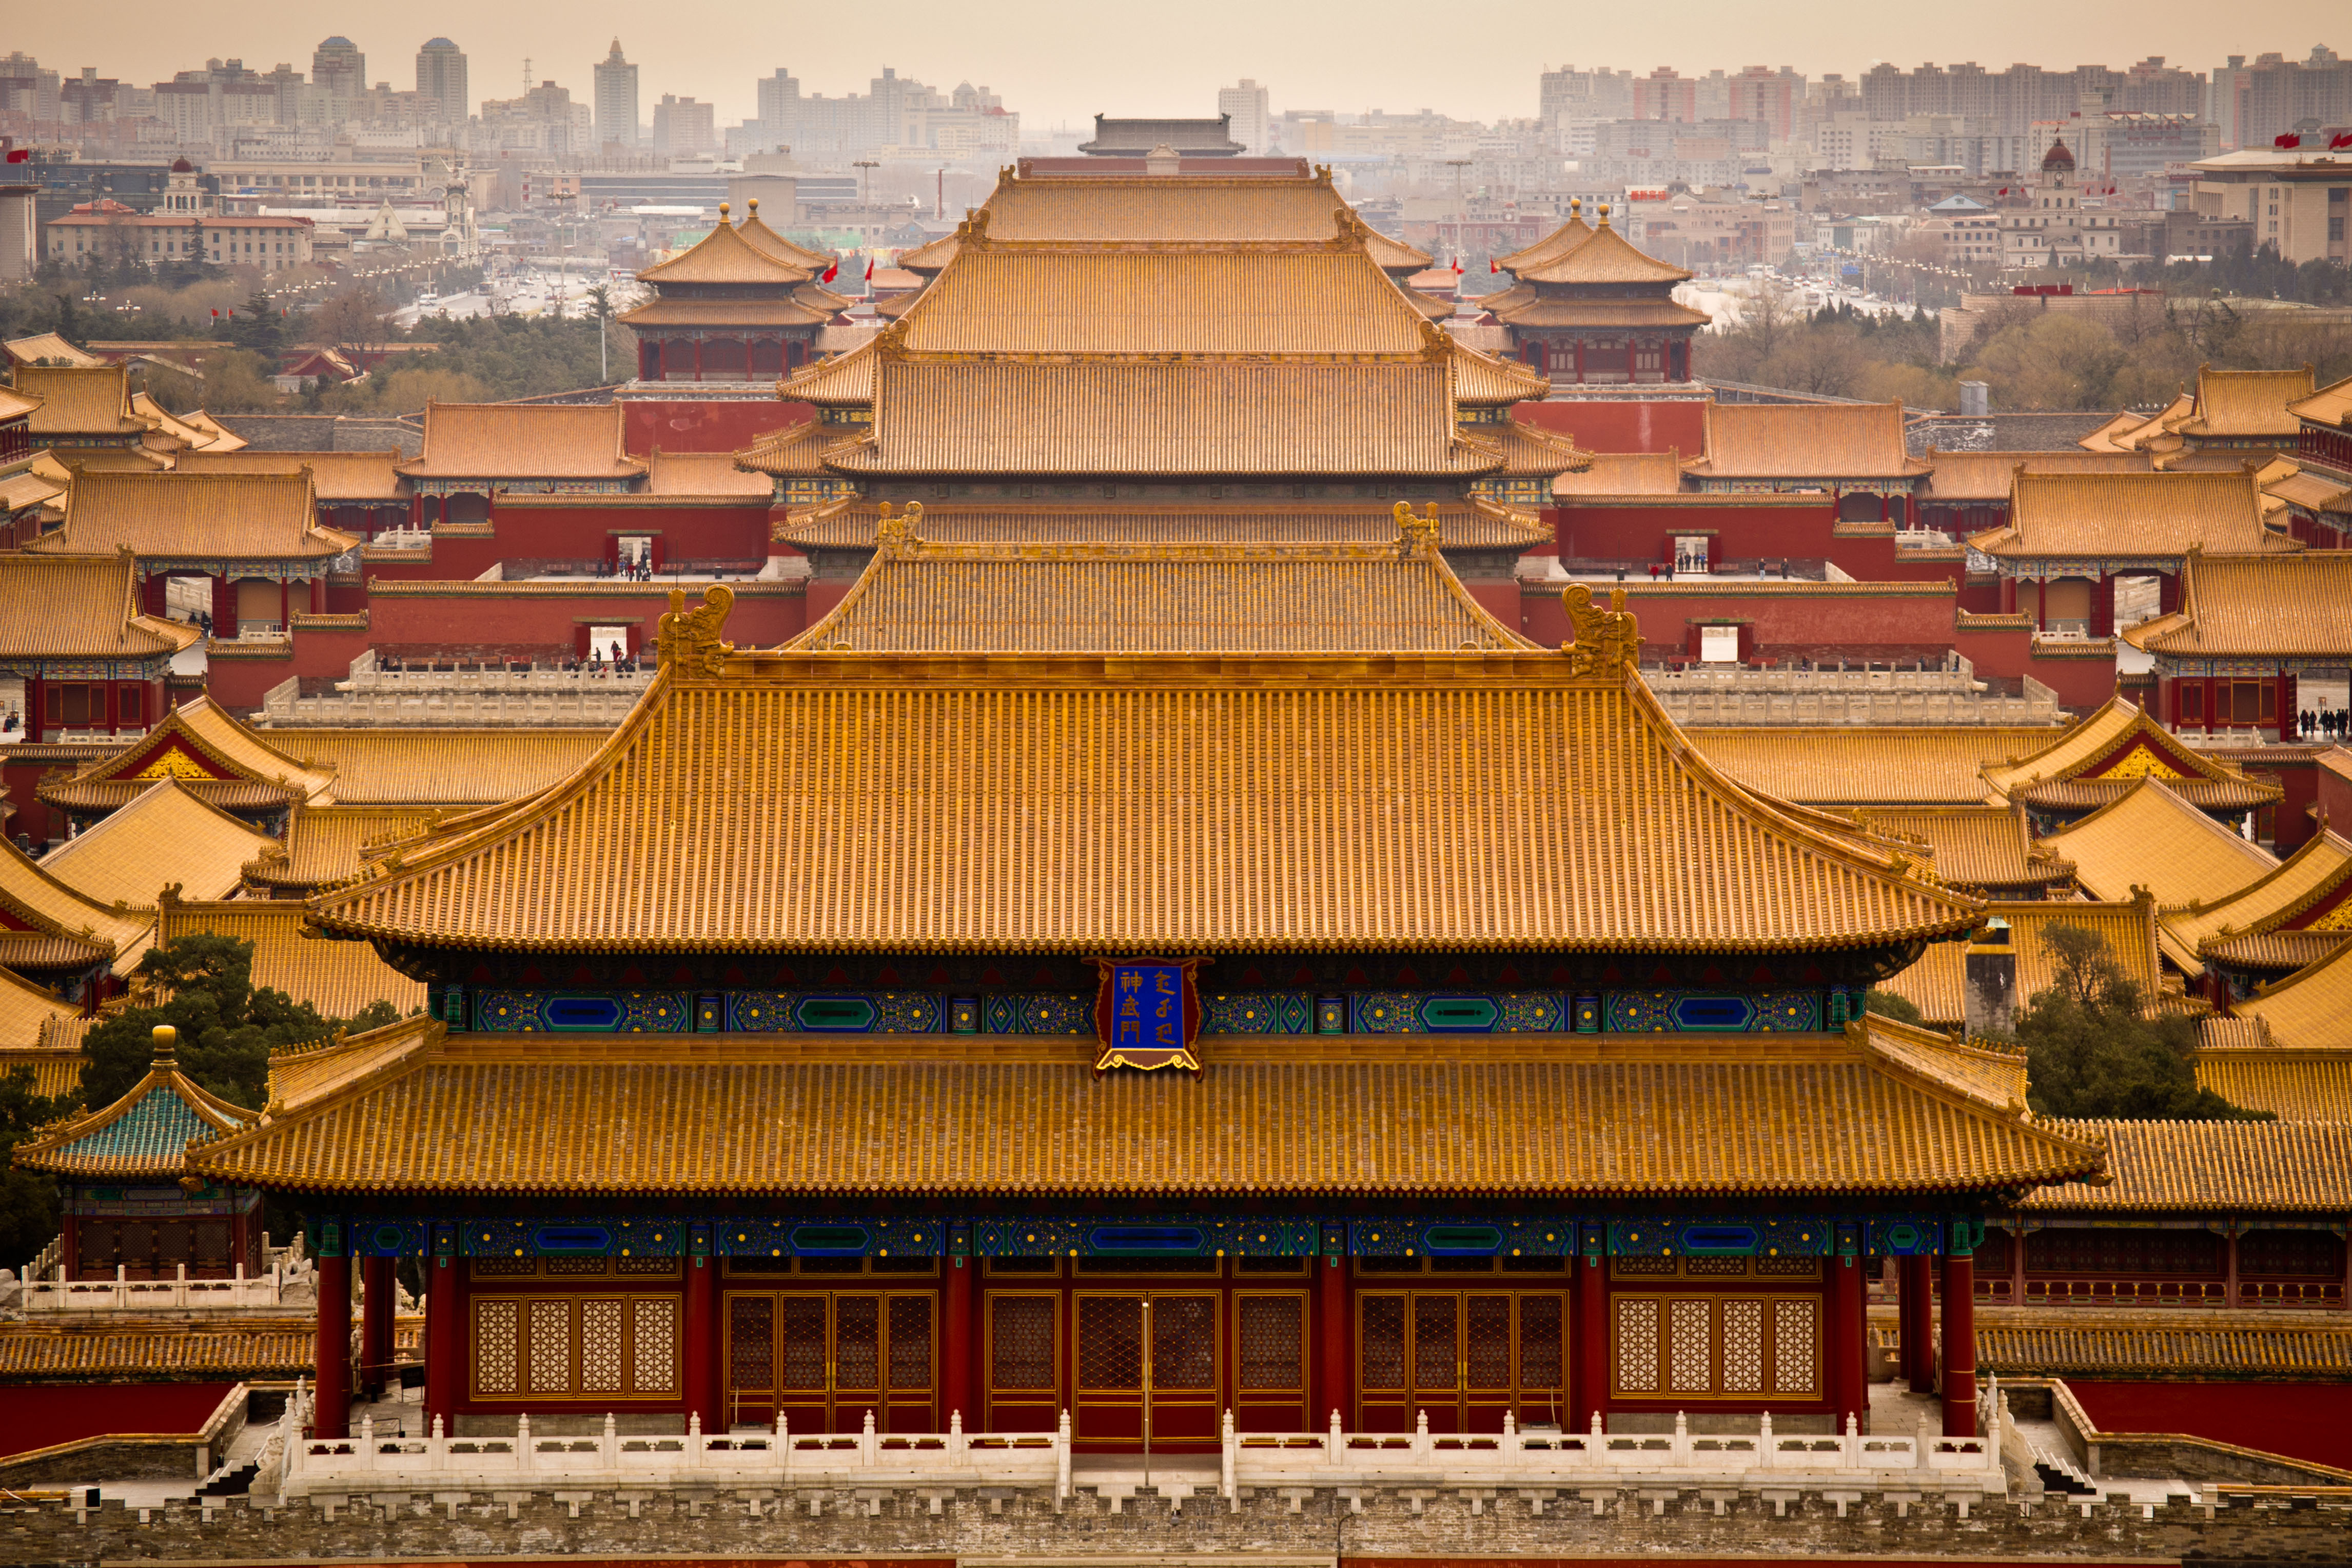 China's forbidden city is a popular destination among tourists. Image: Lonely Planet